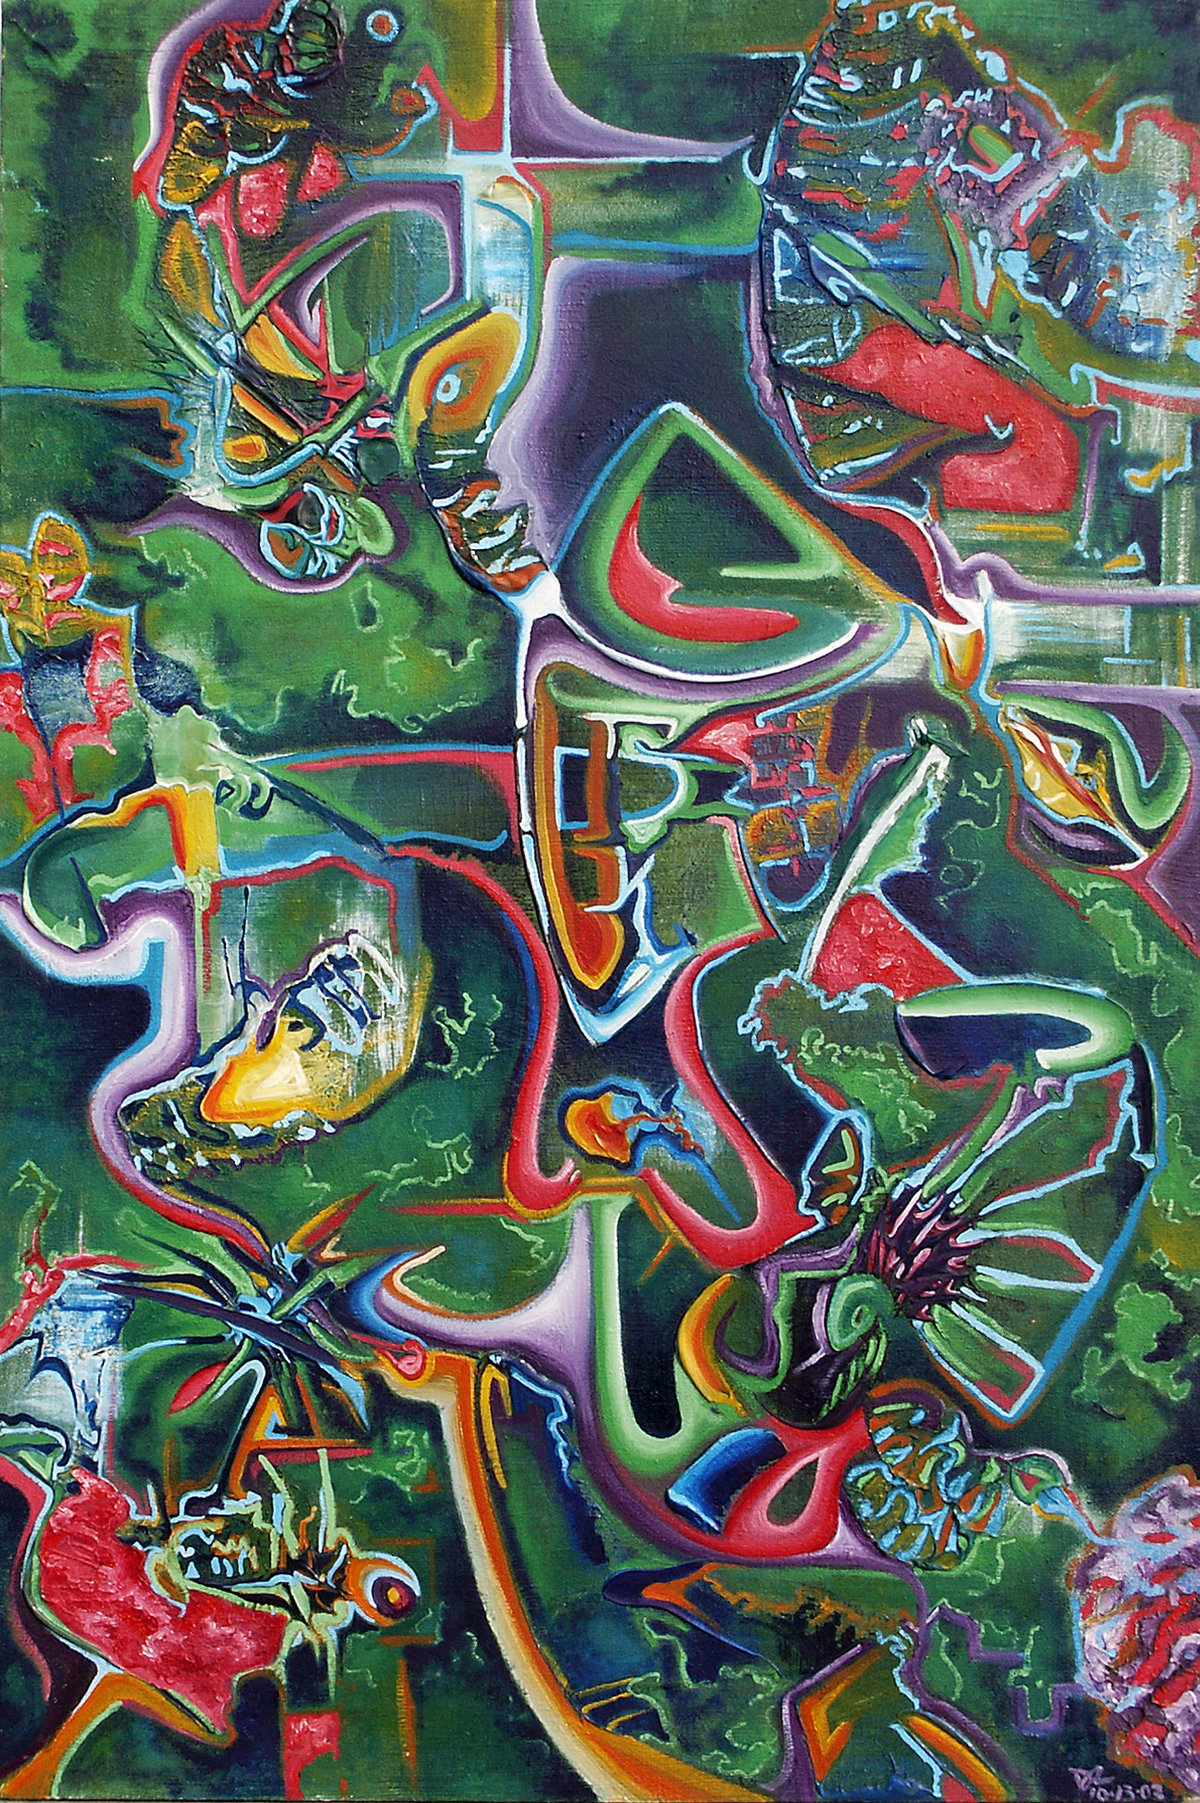 Danielle Zeigler - Green Abstraction - Fall 2003 - 24X40